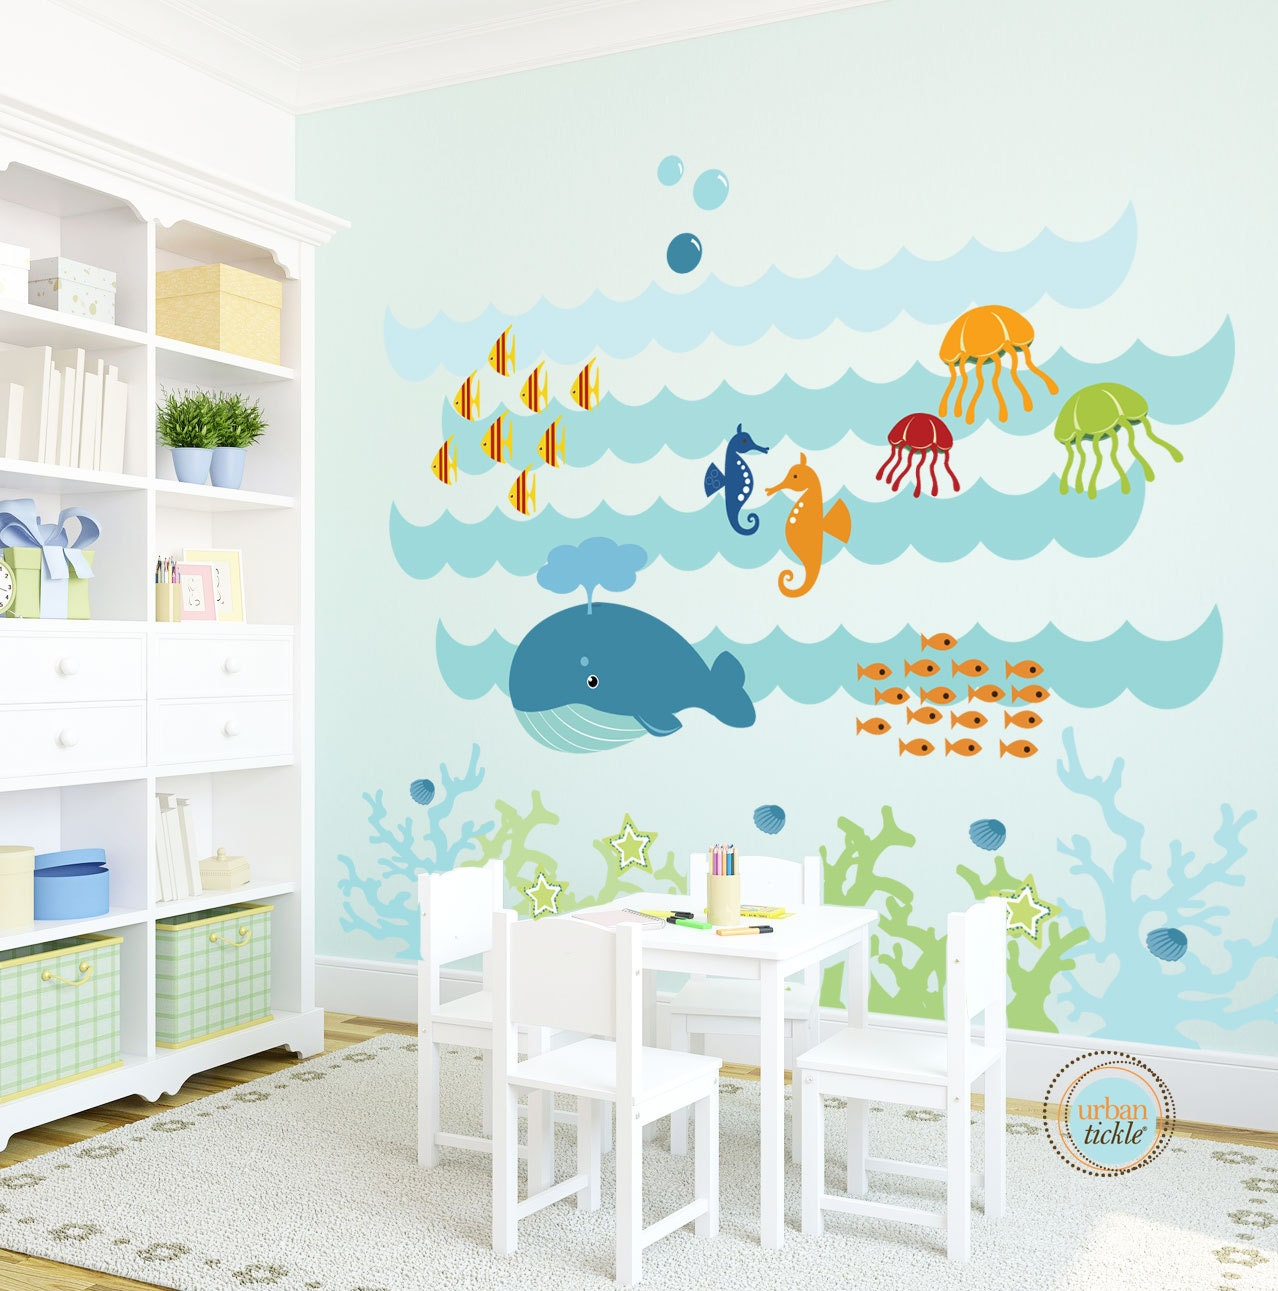 Awesome ?zoom  sc 1 st  letsridenow.com & Kids Room Wall Decals - letsridenow.com -